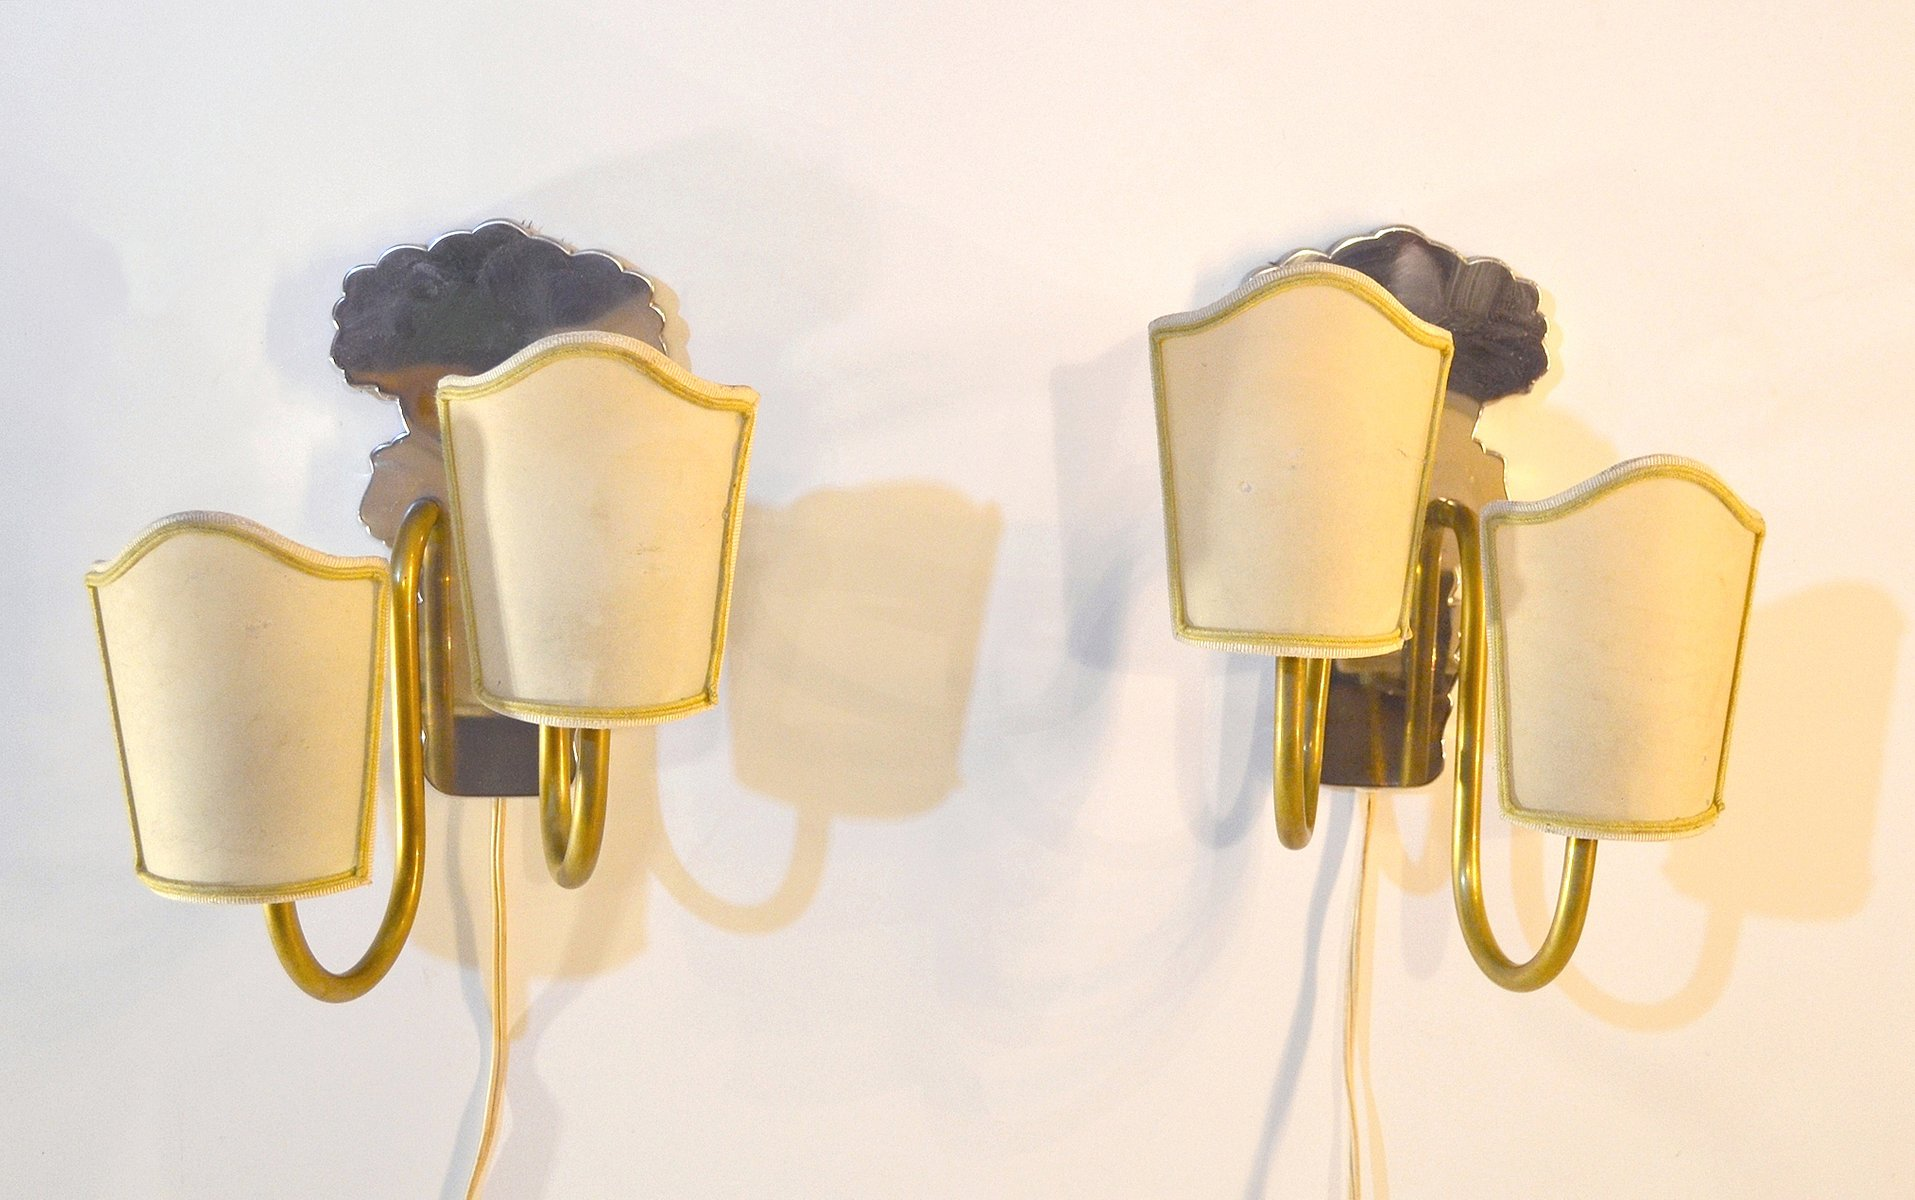 Vintage Swedish Art Deco Wall Sconces, Set Of 2 7. £601.00